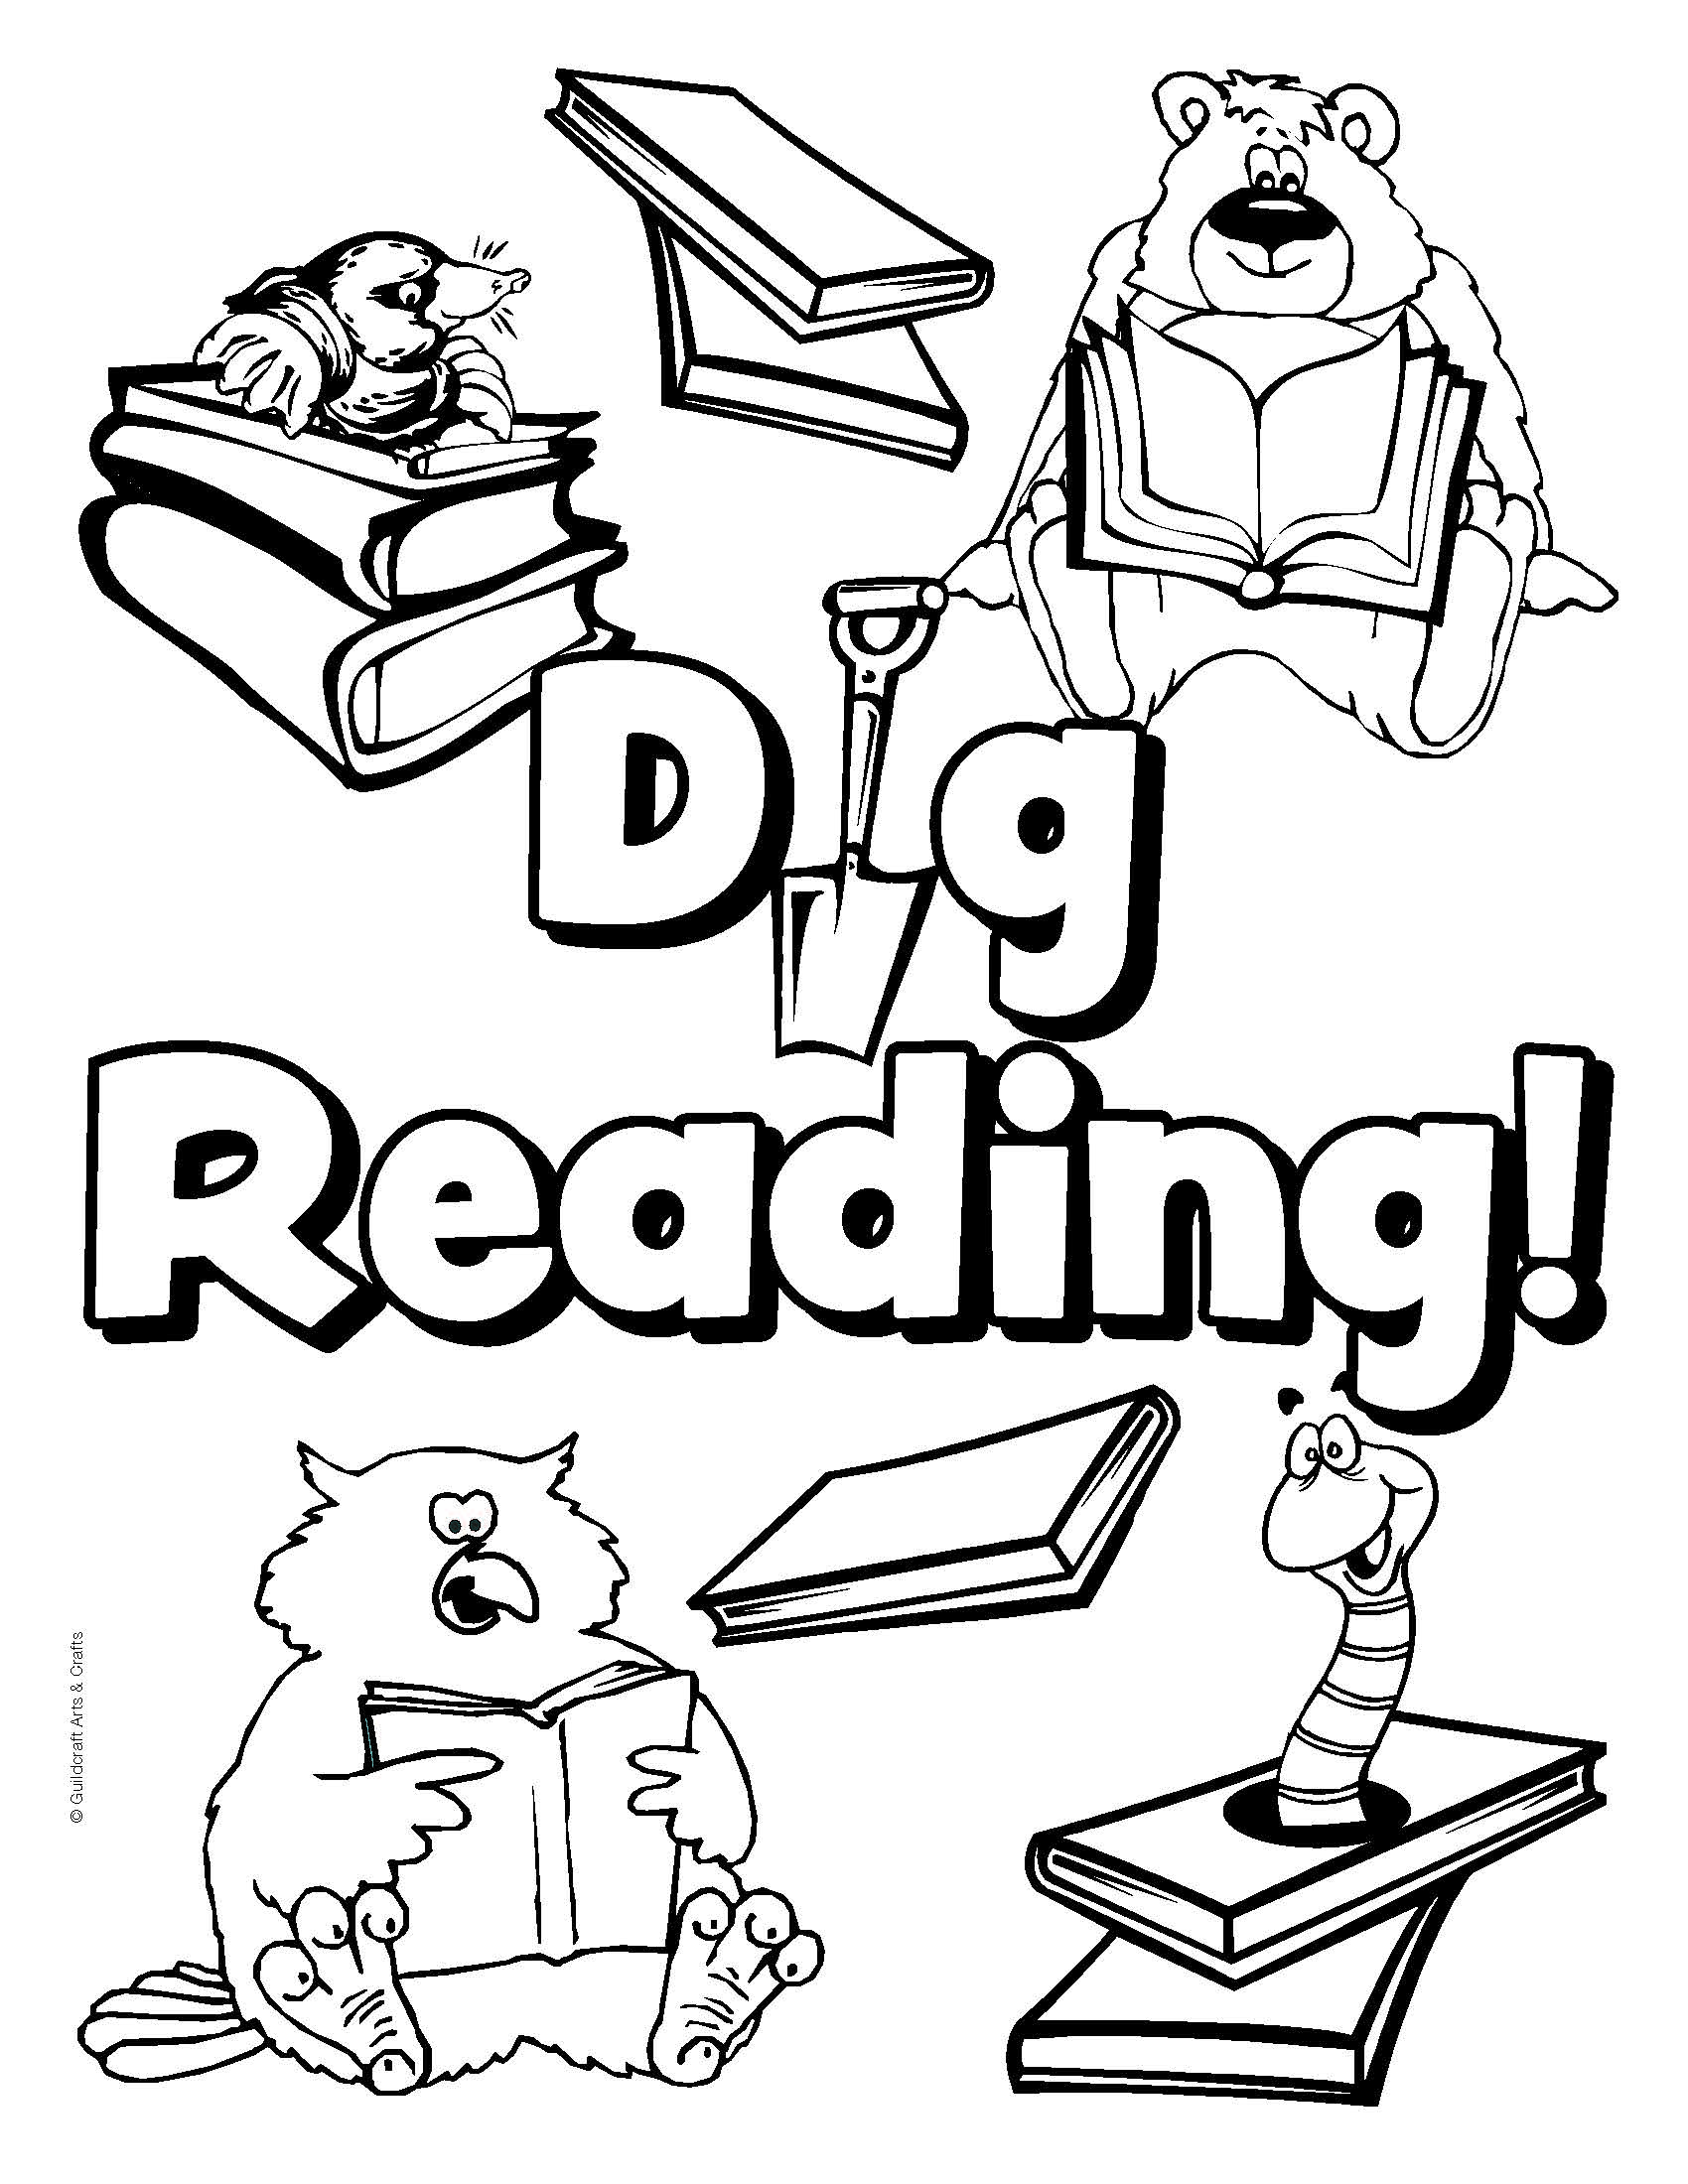 national book month coloring pages - photo#7